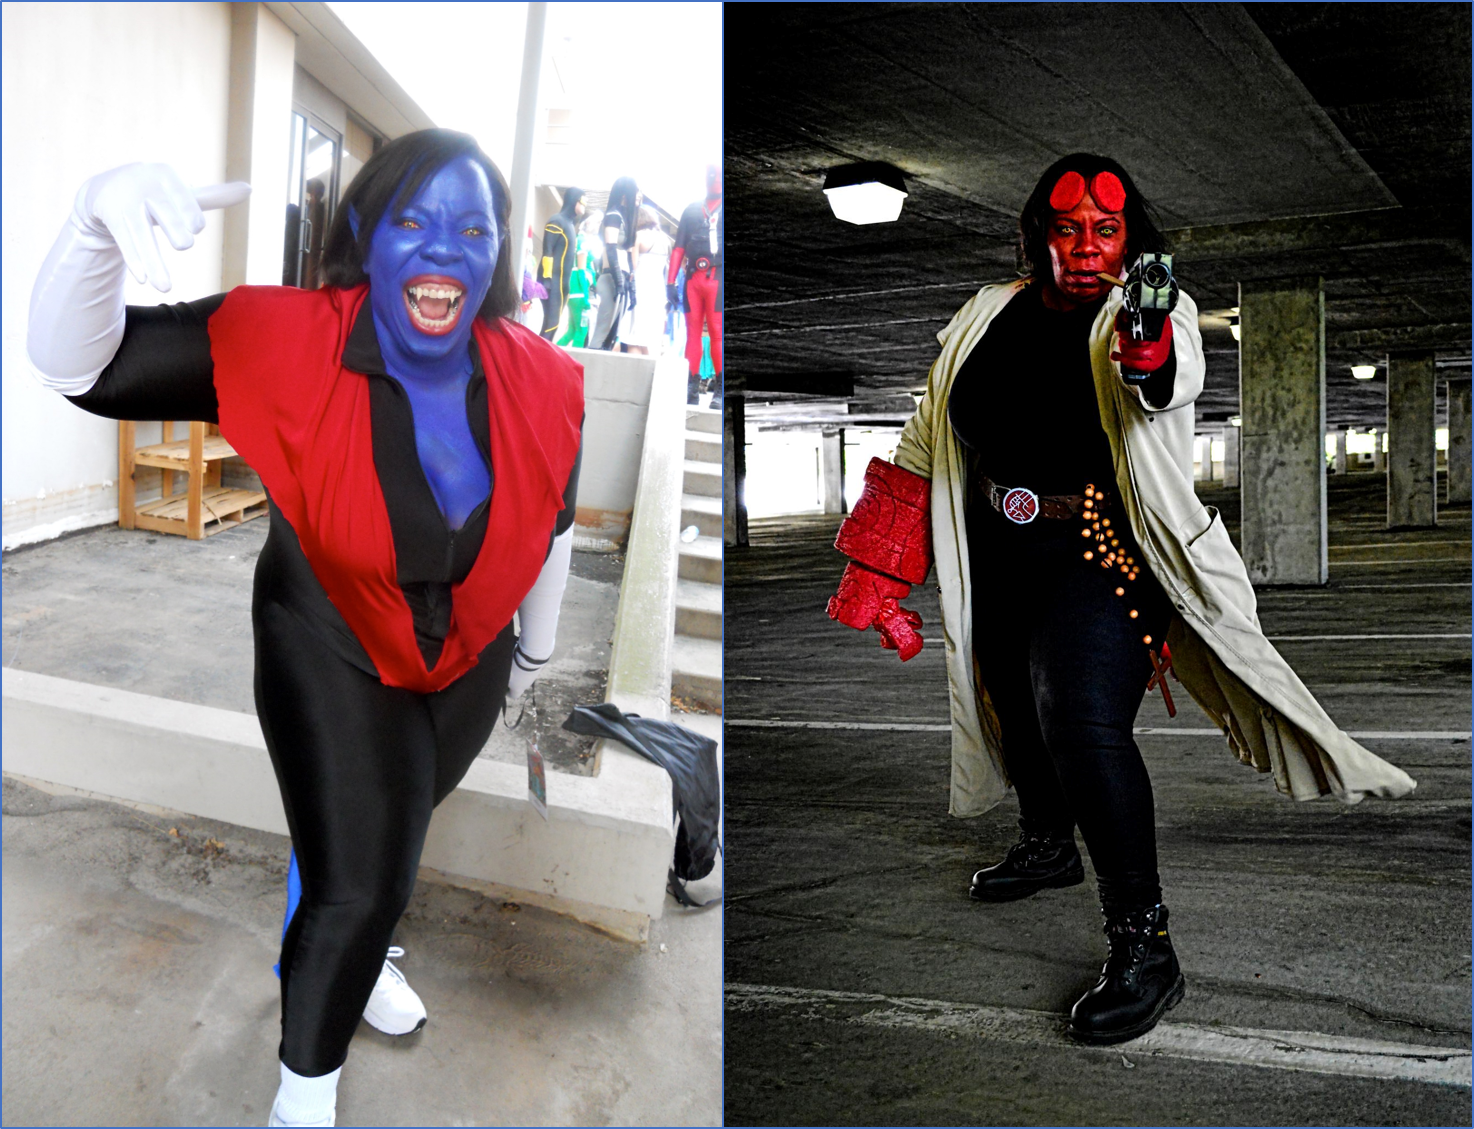 2011 Nightcrawler pic and 2012 Hellboy pic. Hellboy photo by  Jason Bohannon of Soulfuric Studios .